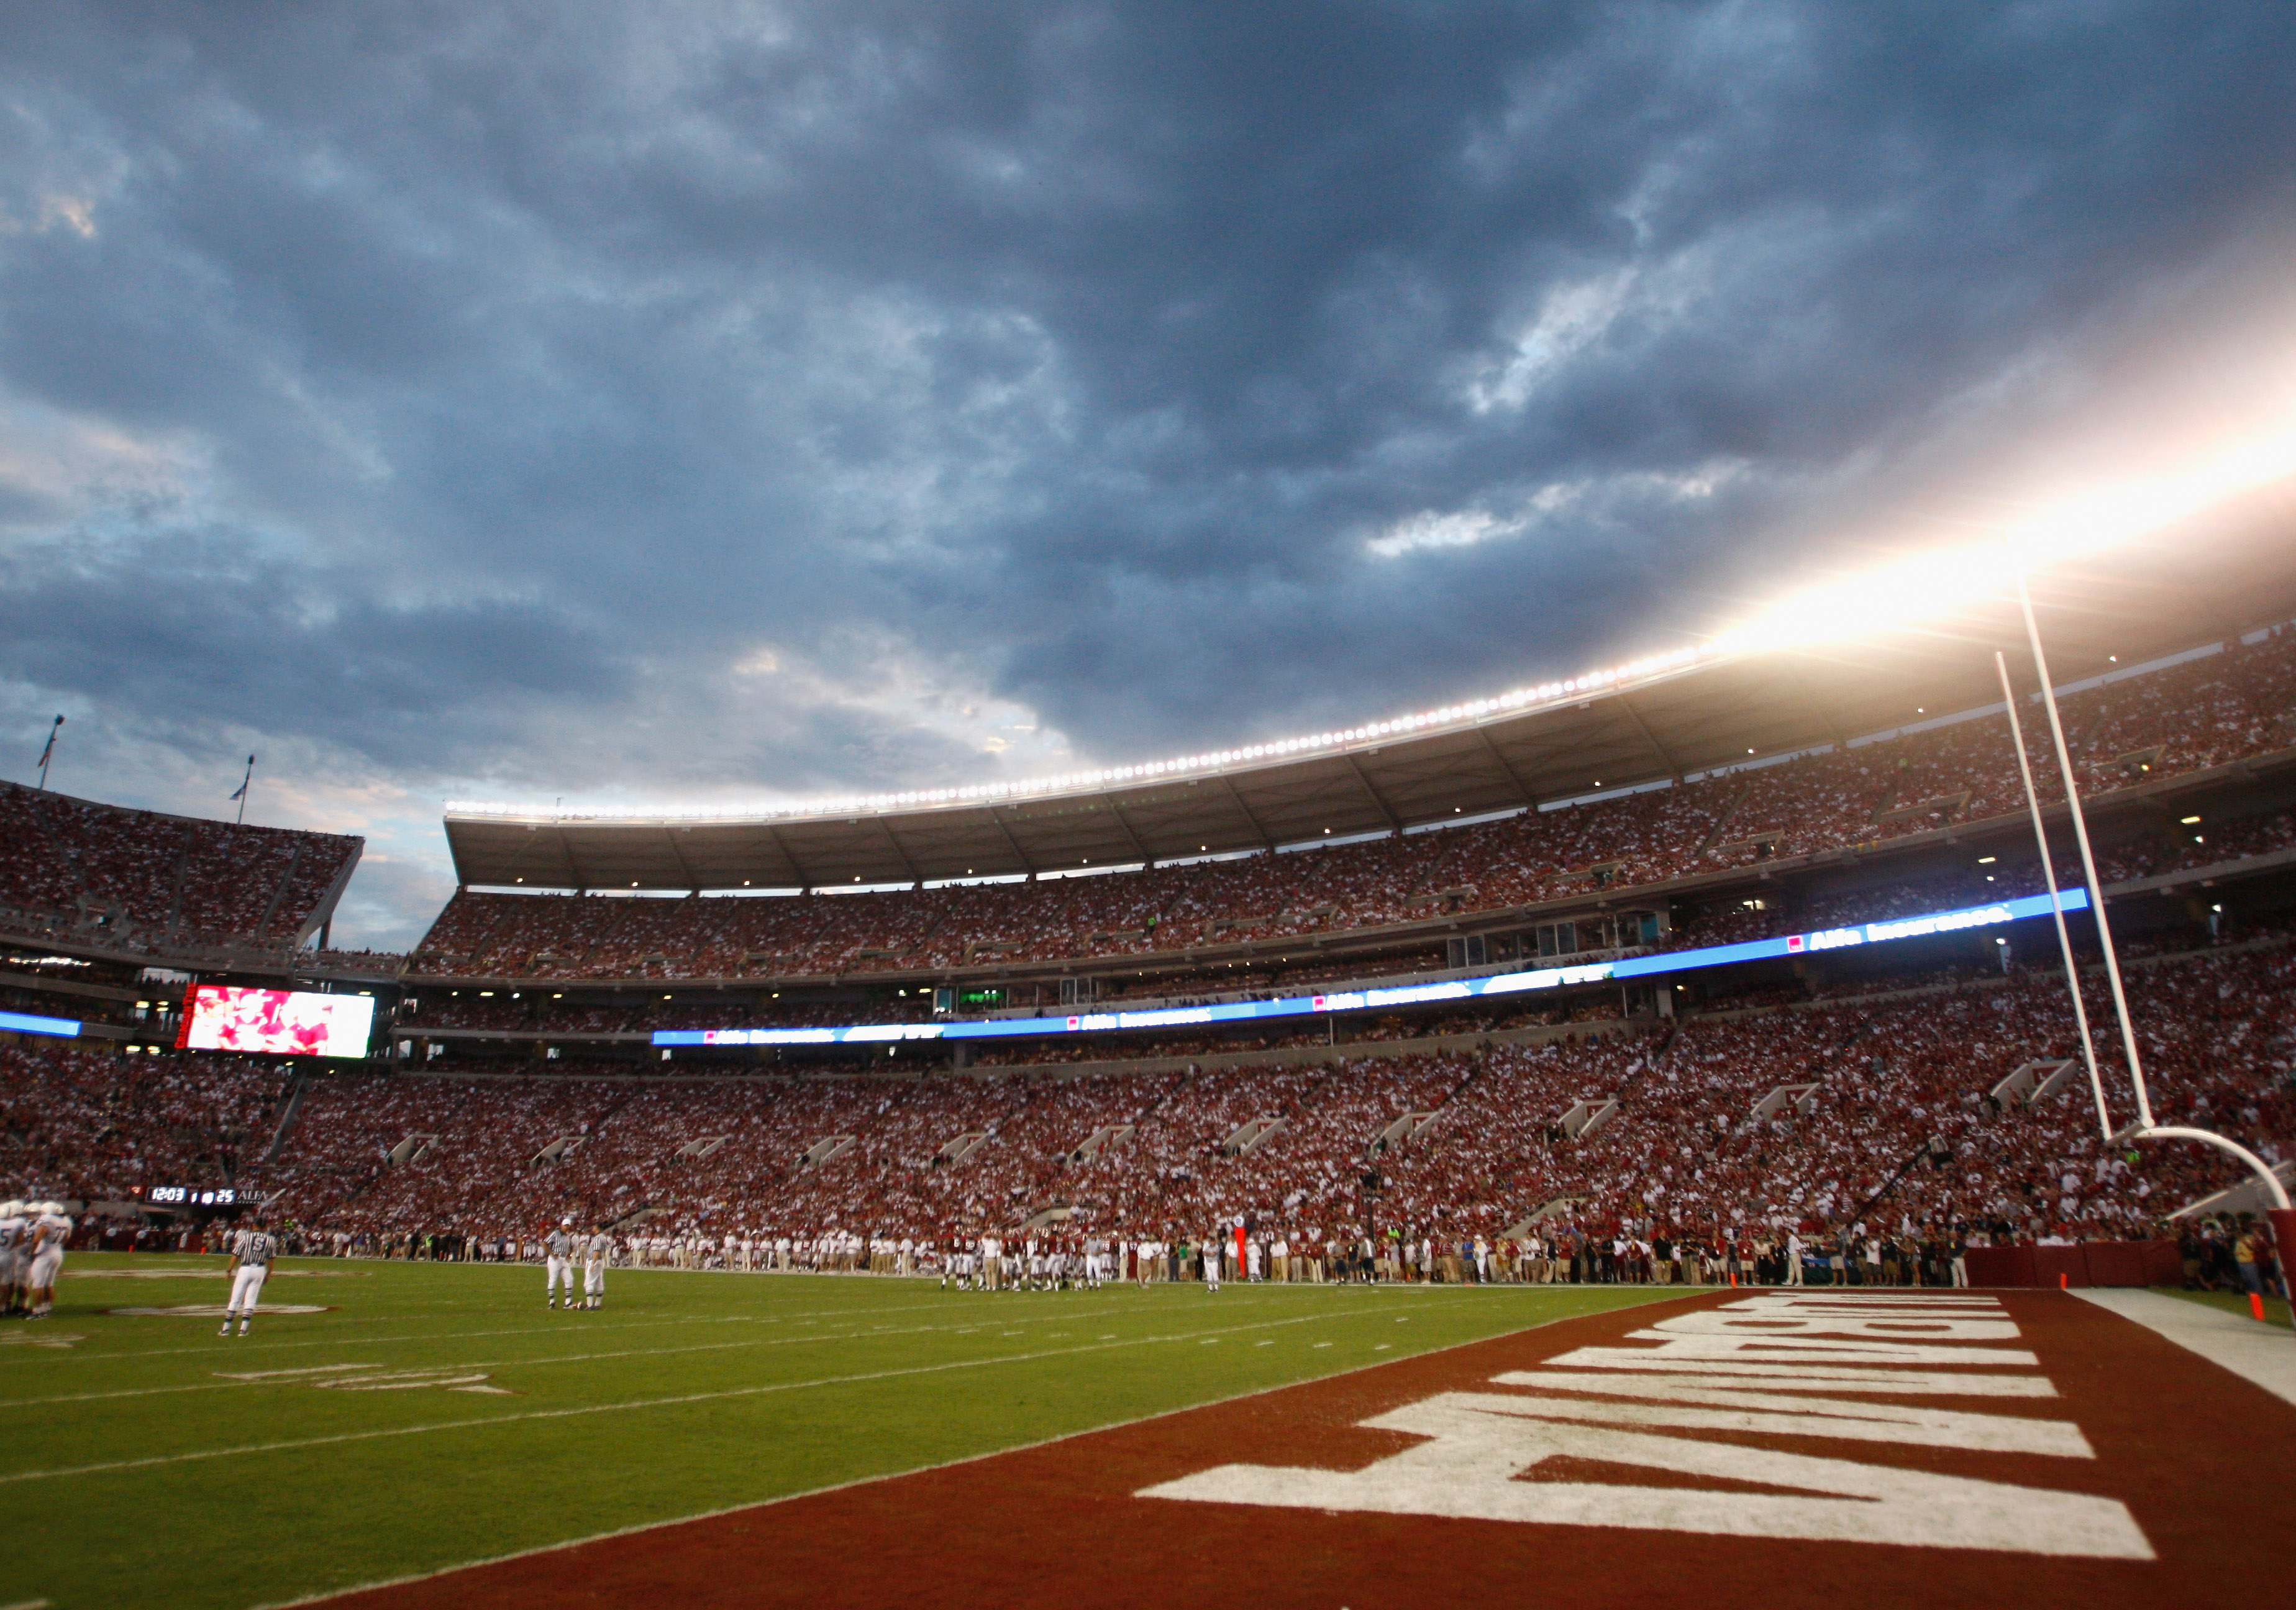 TUSCALOOSA, AL - SEPTEMBER 11:  A general view of Bryant-Denny Stadium during the game between the Alabama Crimson Tide and the Penn State Nittany Lions on September 11, 2010 in Tuscaloosa, Alabama.  (Photo by Kevin C. Cox/Getty Images)